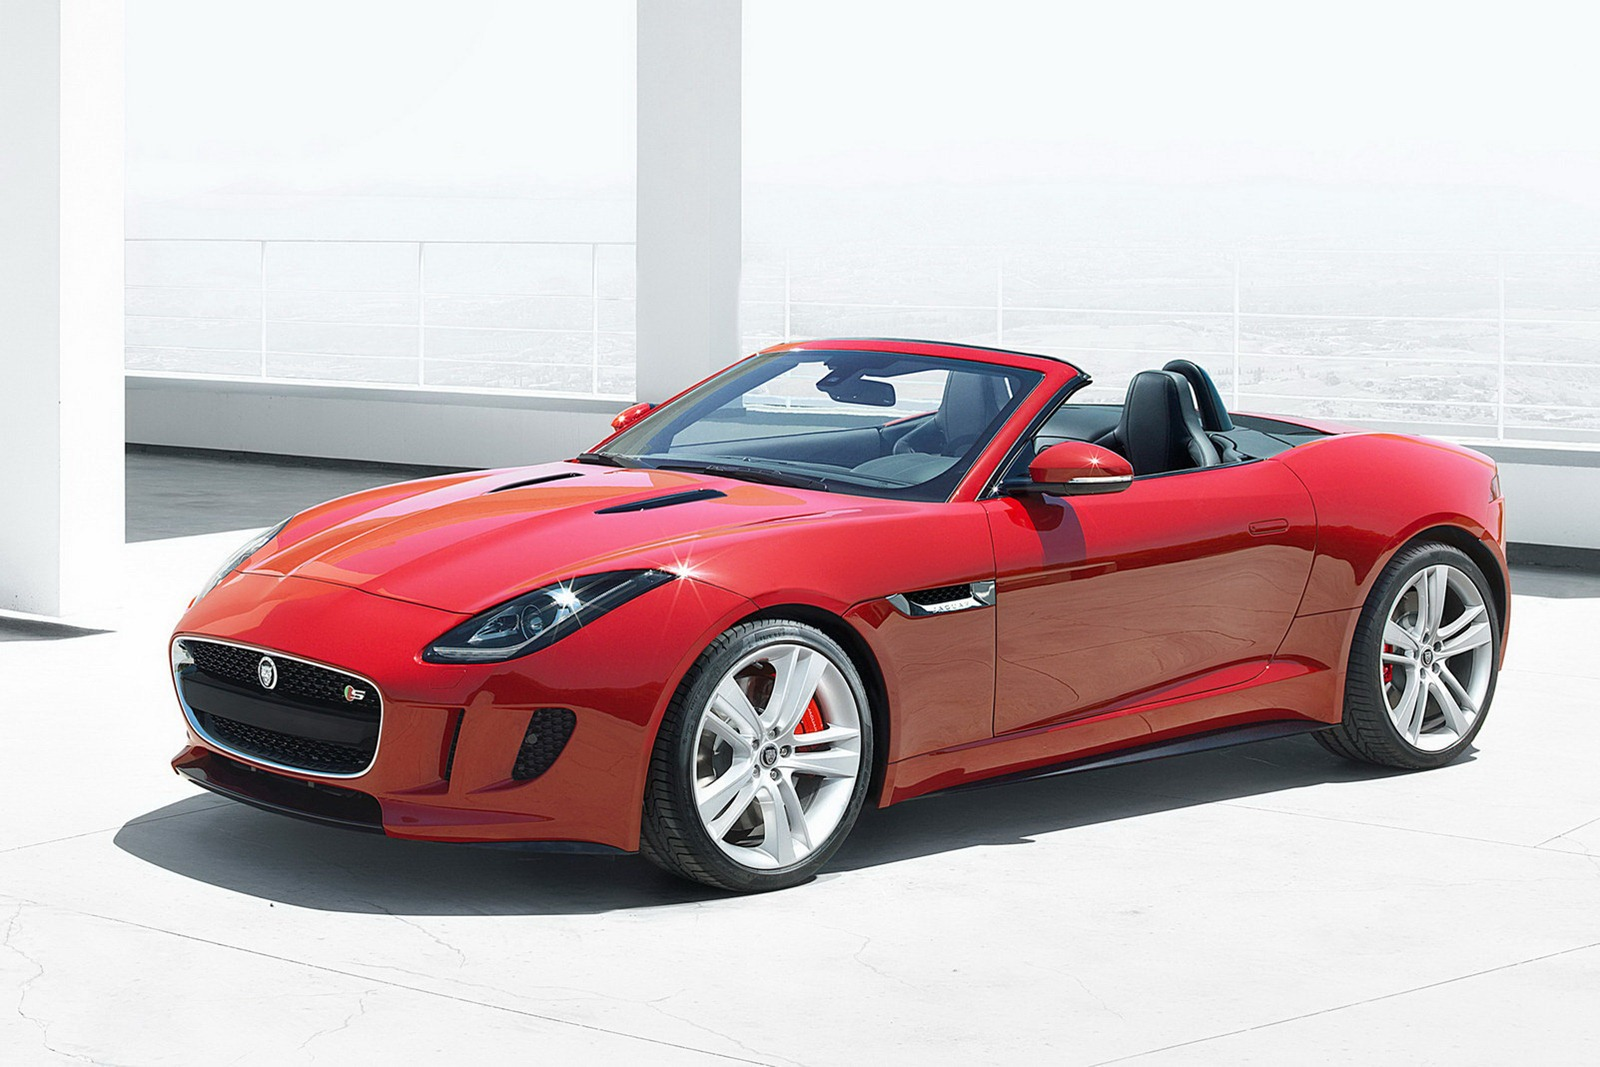 2013 Jaguar F Type Jaguar launches 2013 F Type models at the Paris motor show